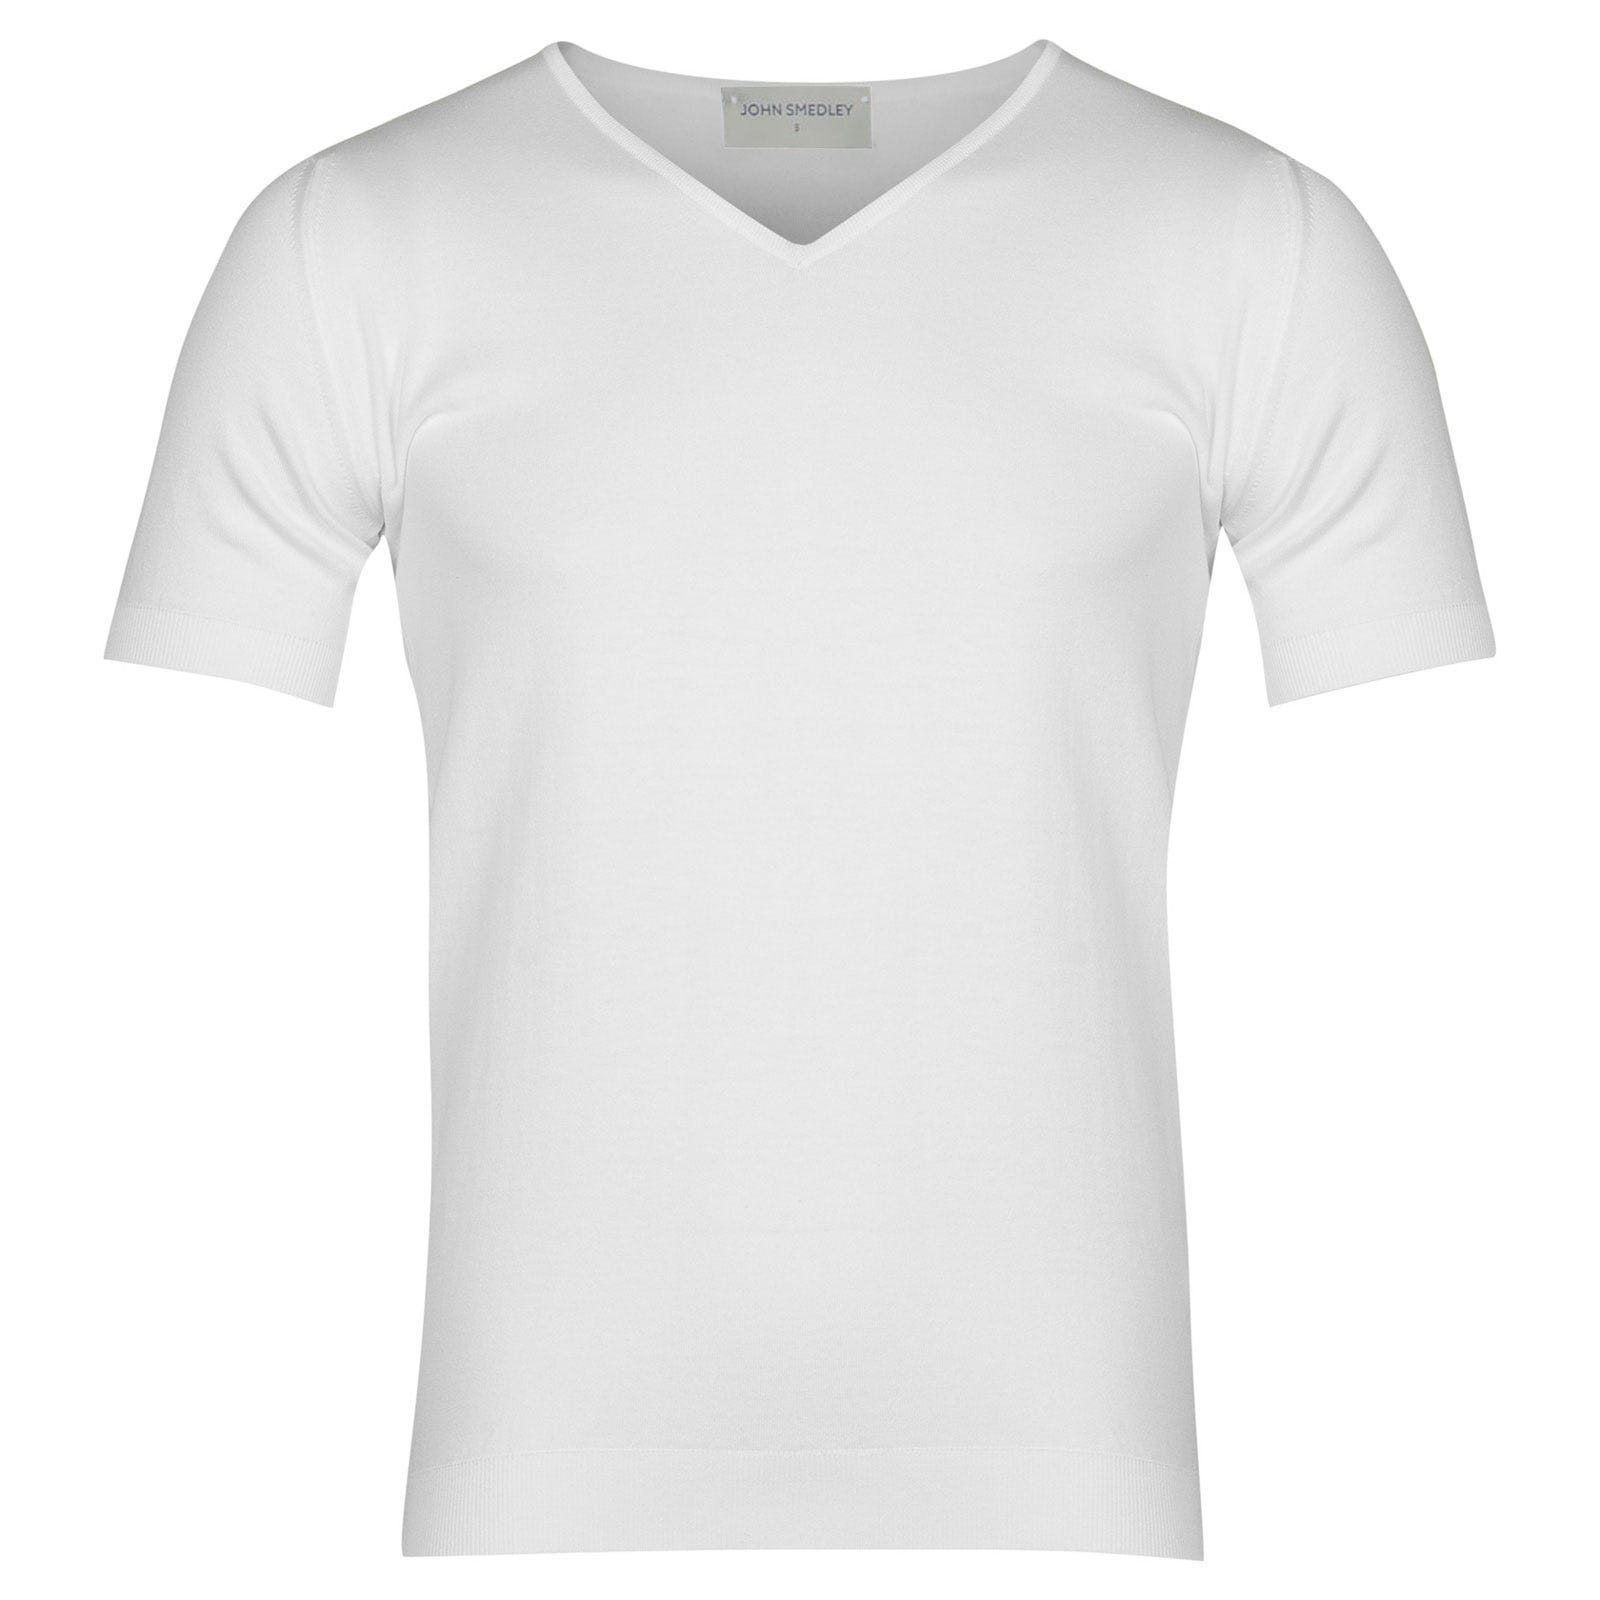 John Smedley Braedon Sea Island Cotton T-shirt in White-XXL